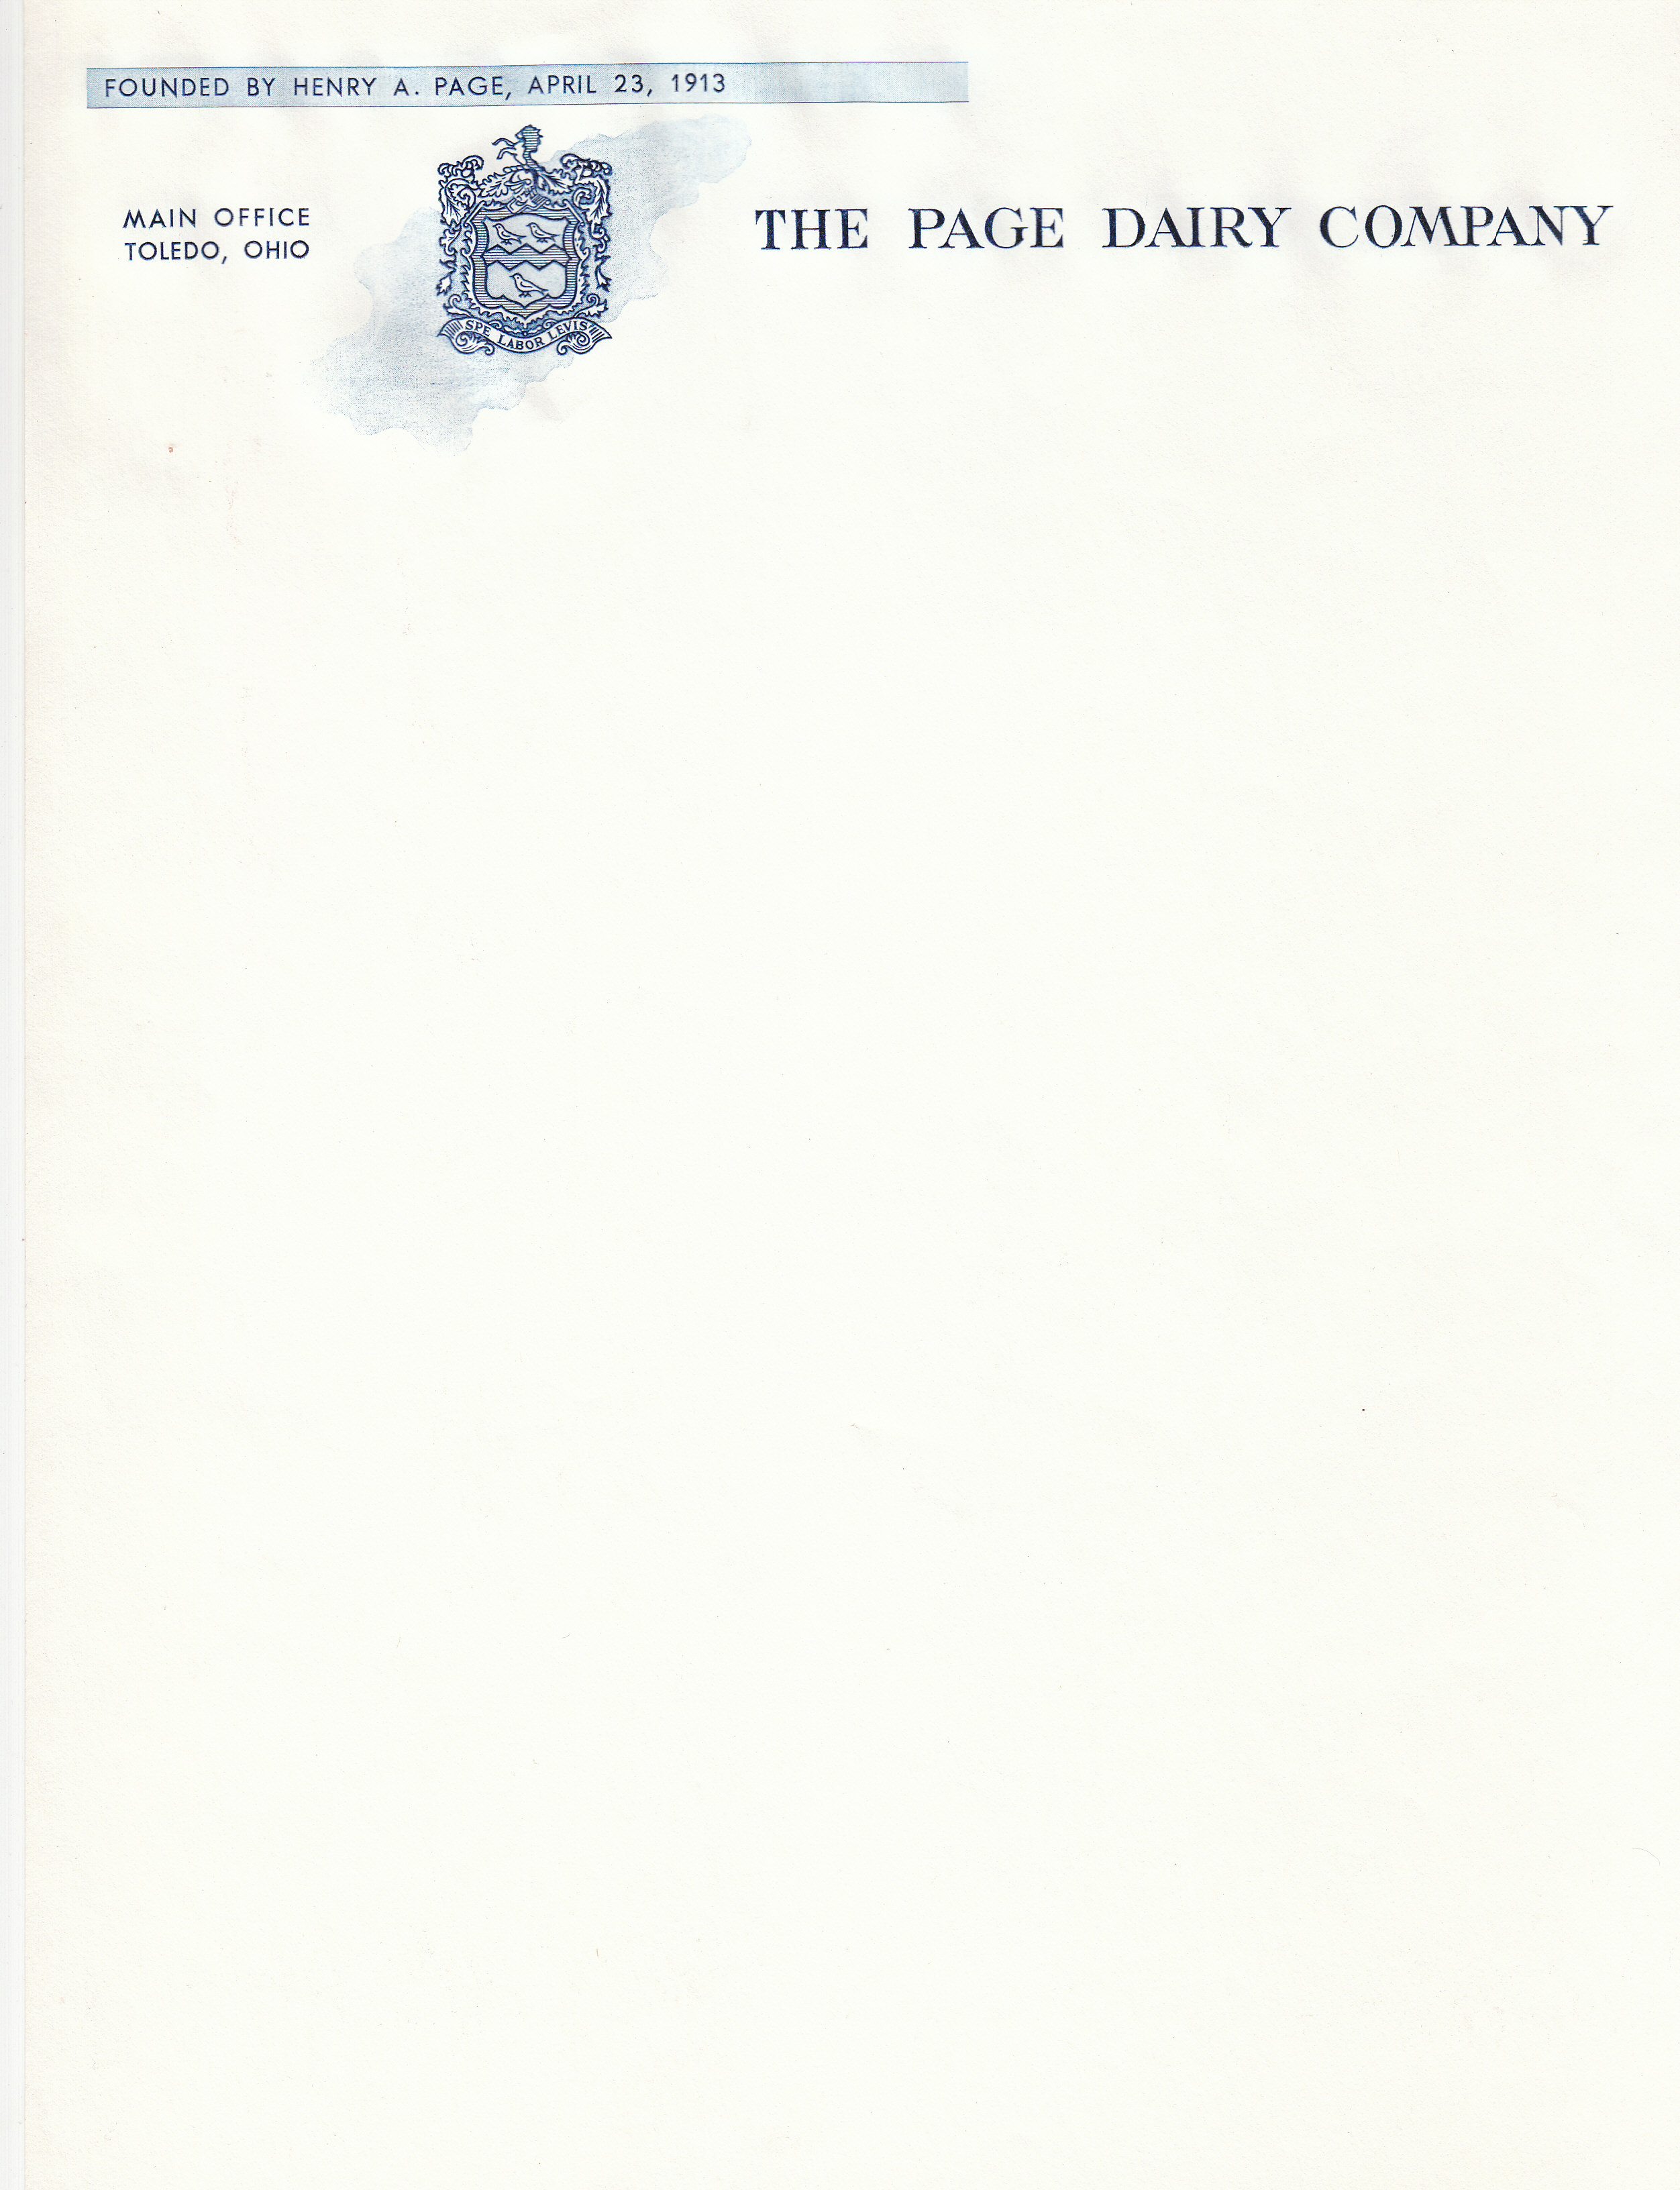 Page Dairy Letterhead